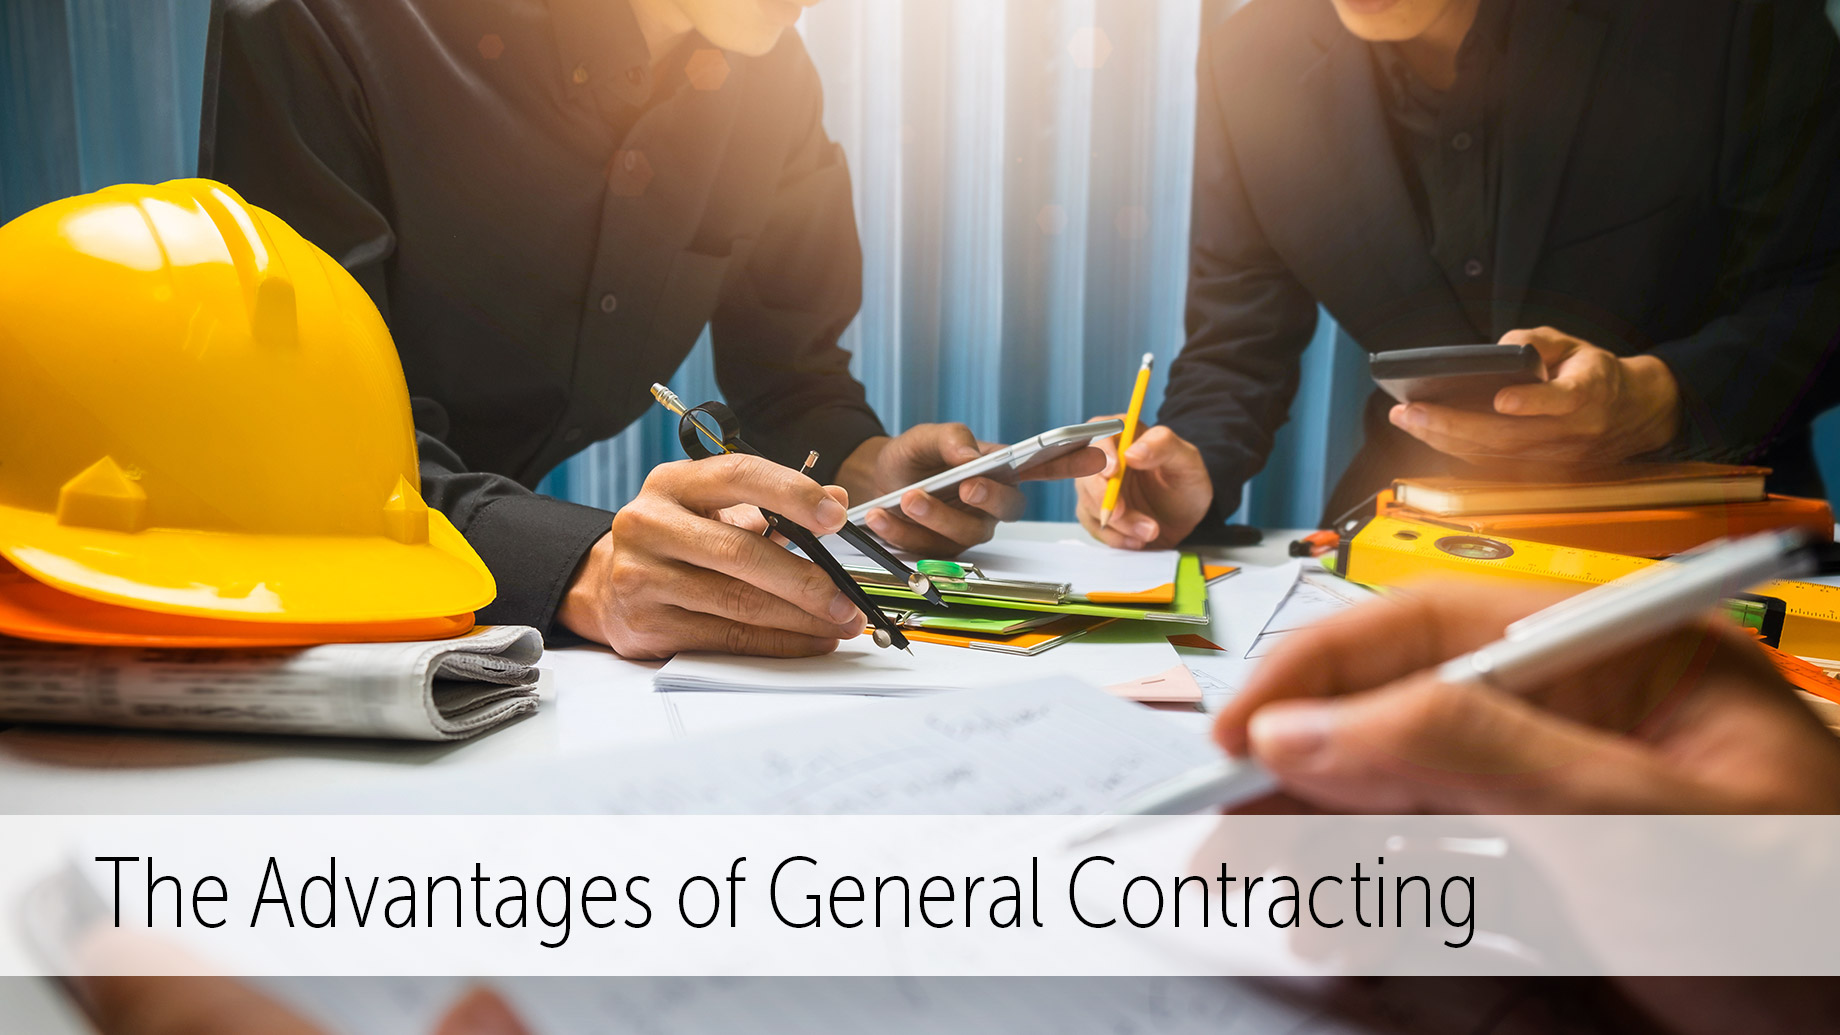 The Advantages of General Contracting